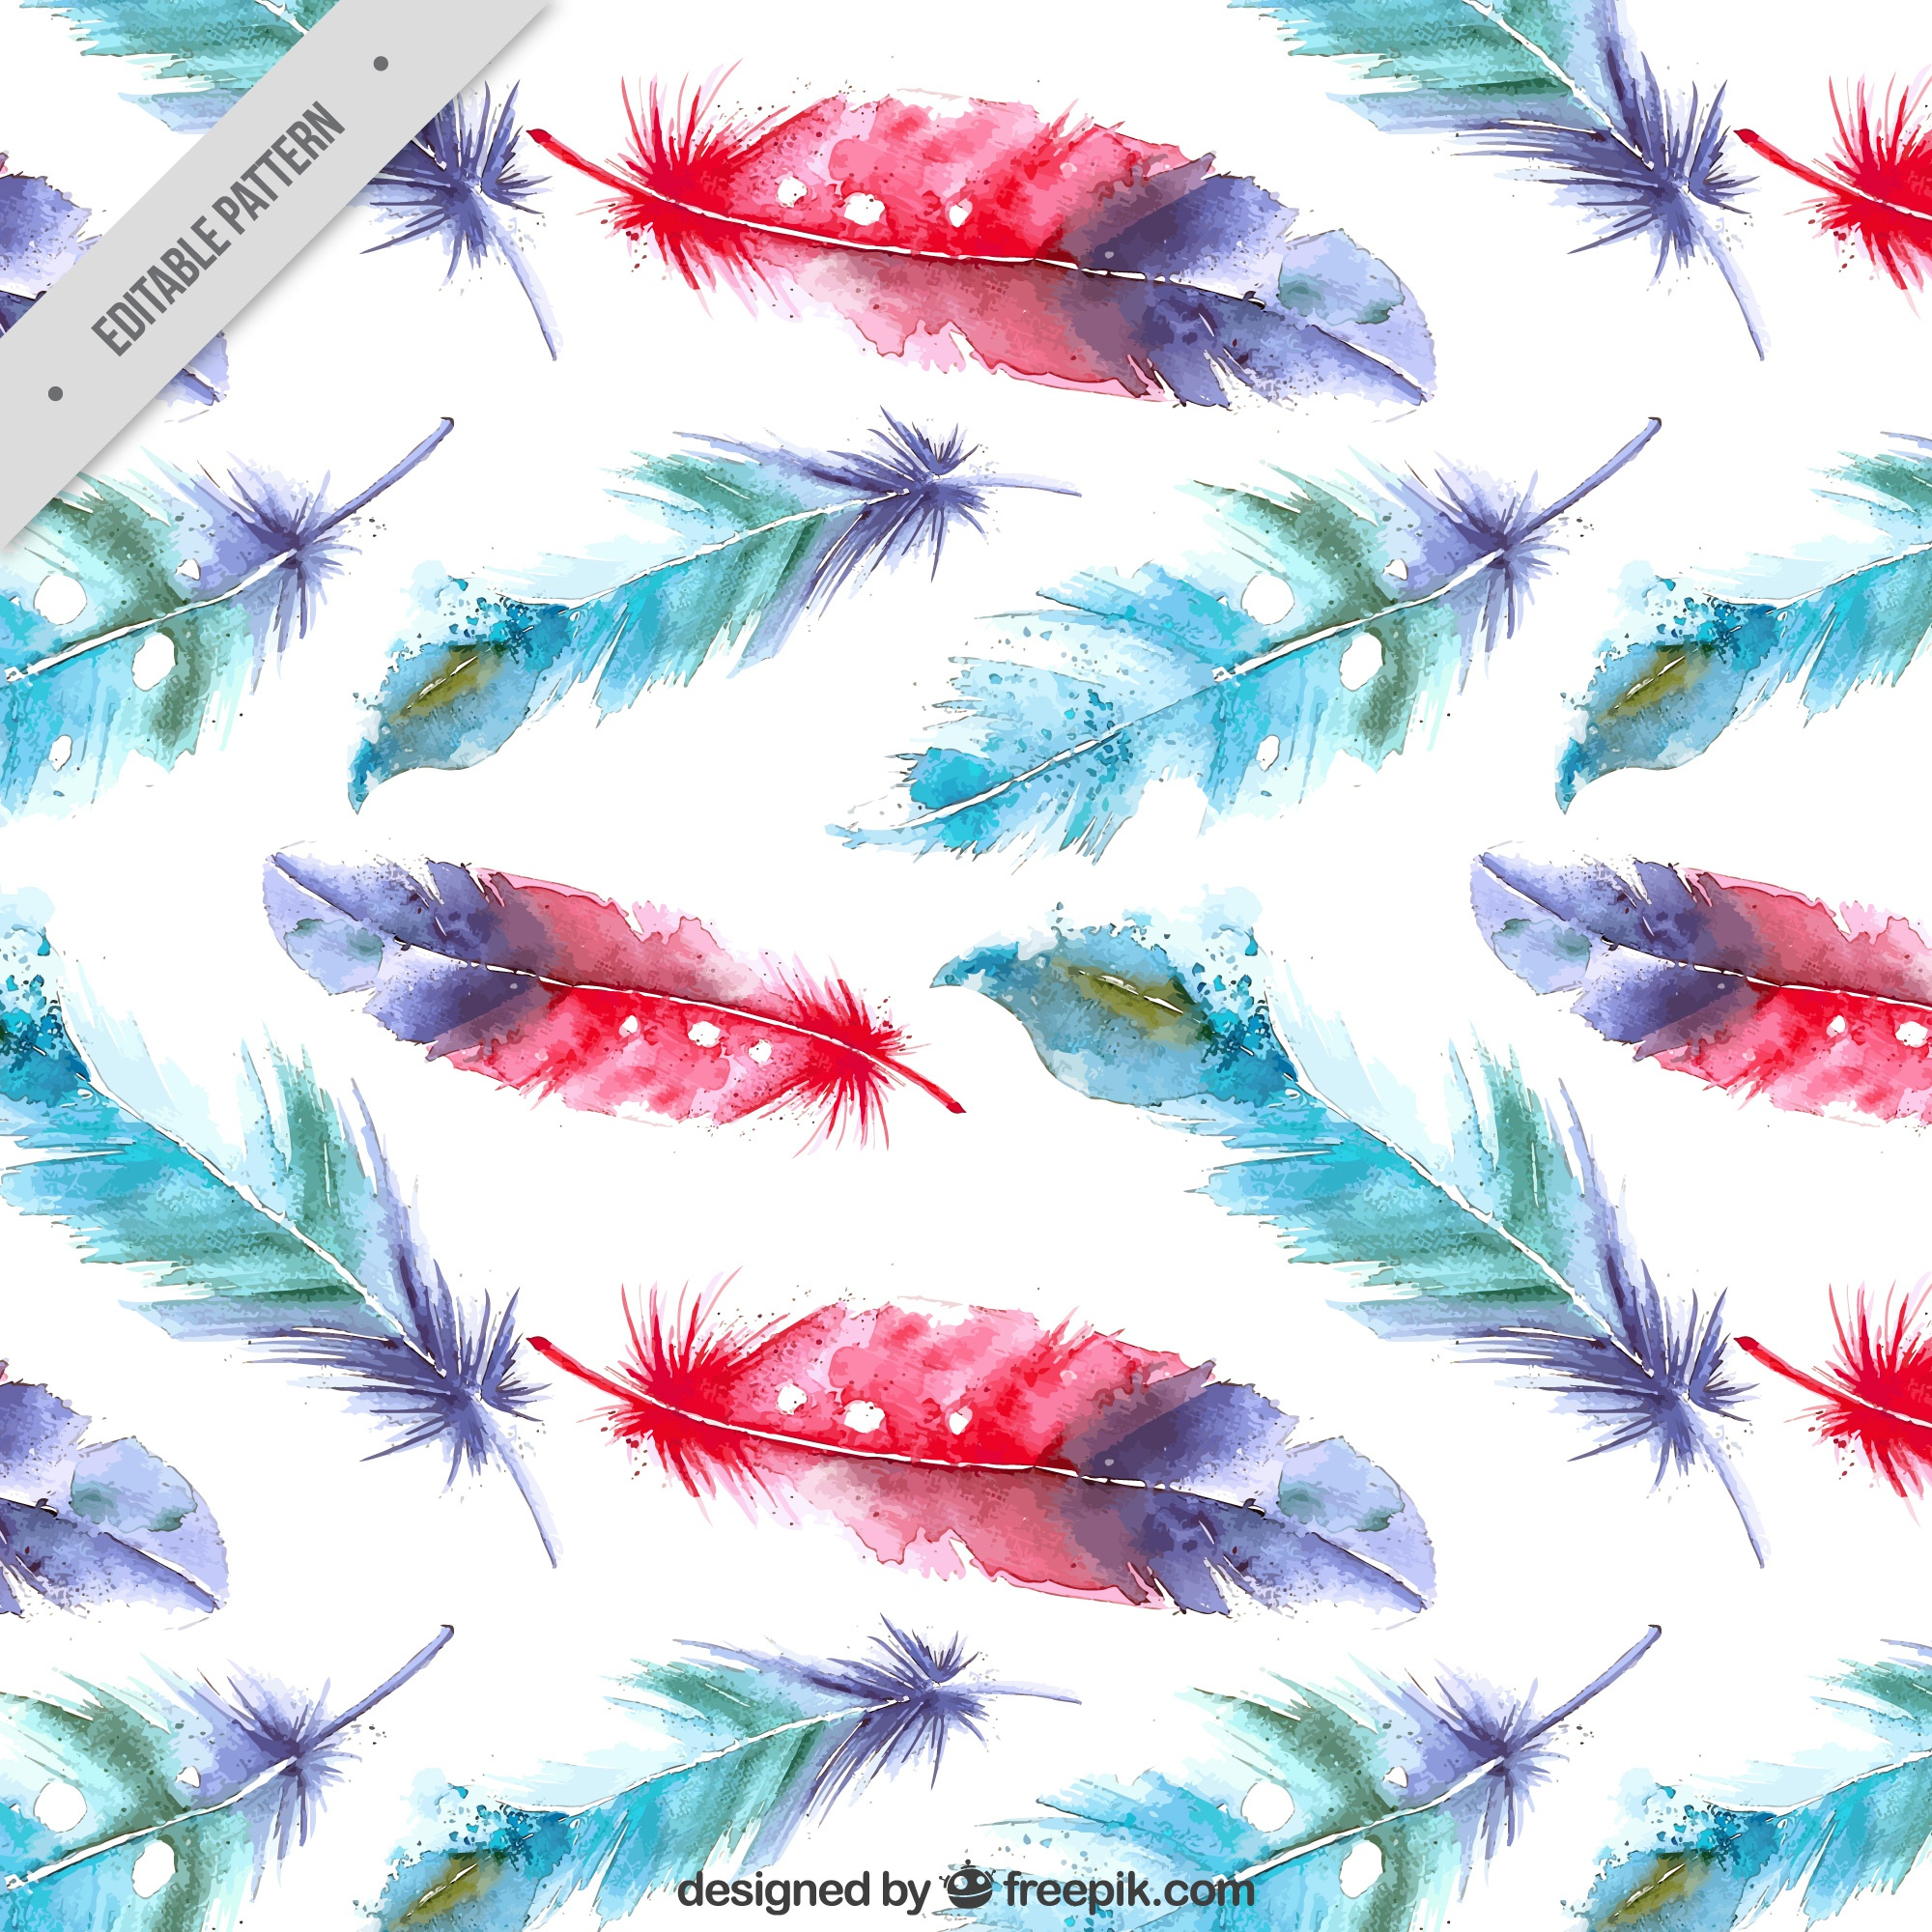 Watercolor feathers background